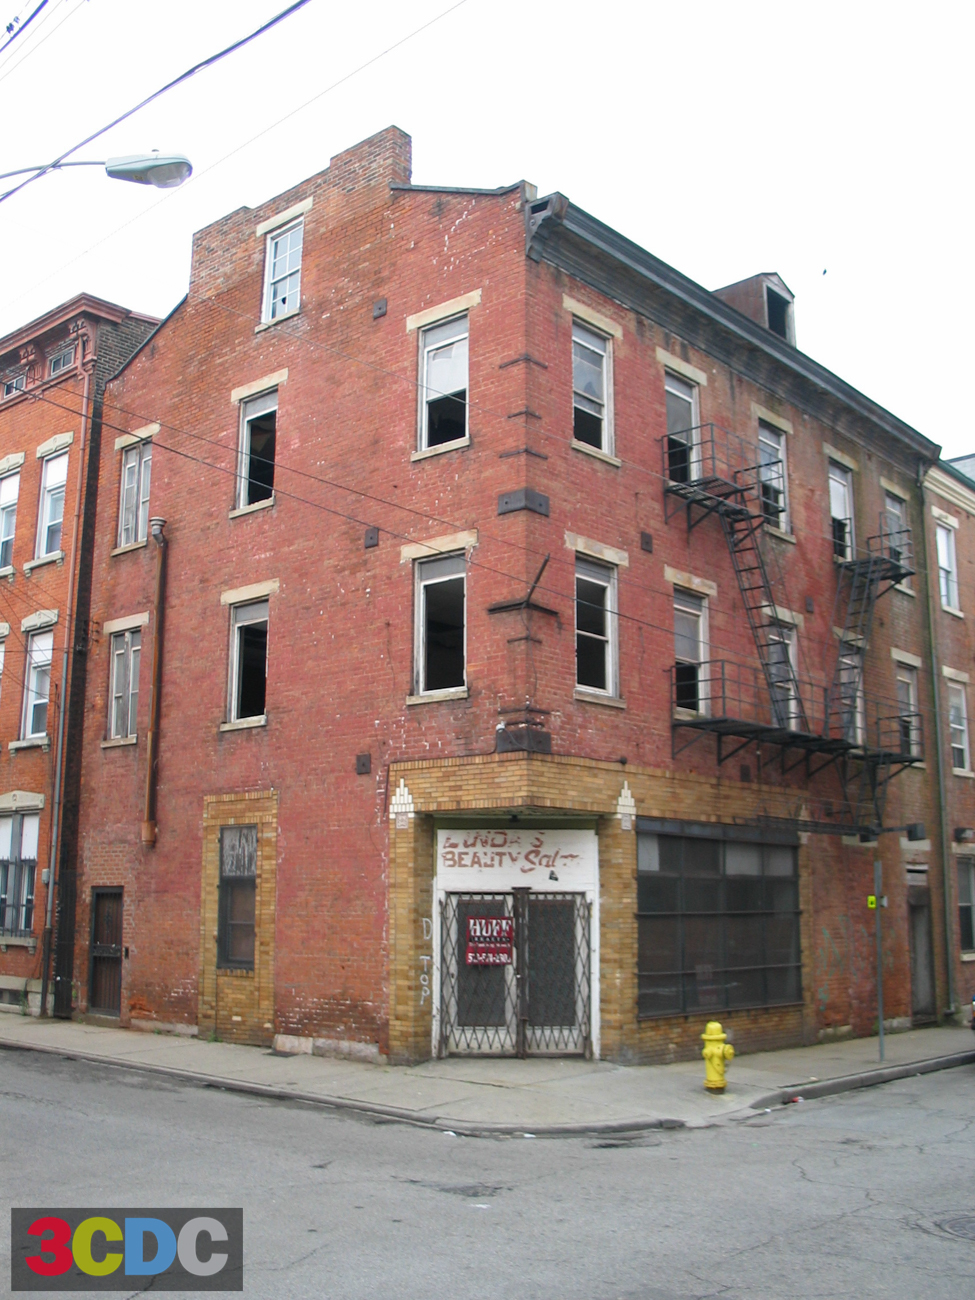 [BEFORE] LOCATION: Corner of 14th and Republic Streets (Over-the-Rhine) / IMAGE: Courtesy of 3CDC